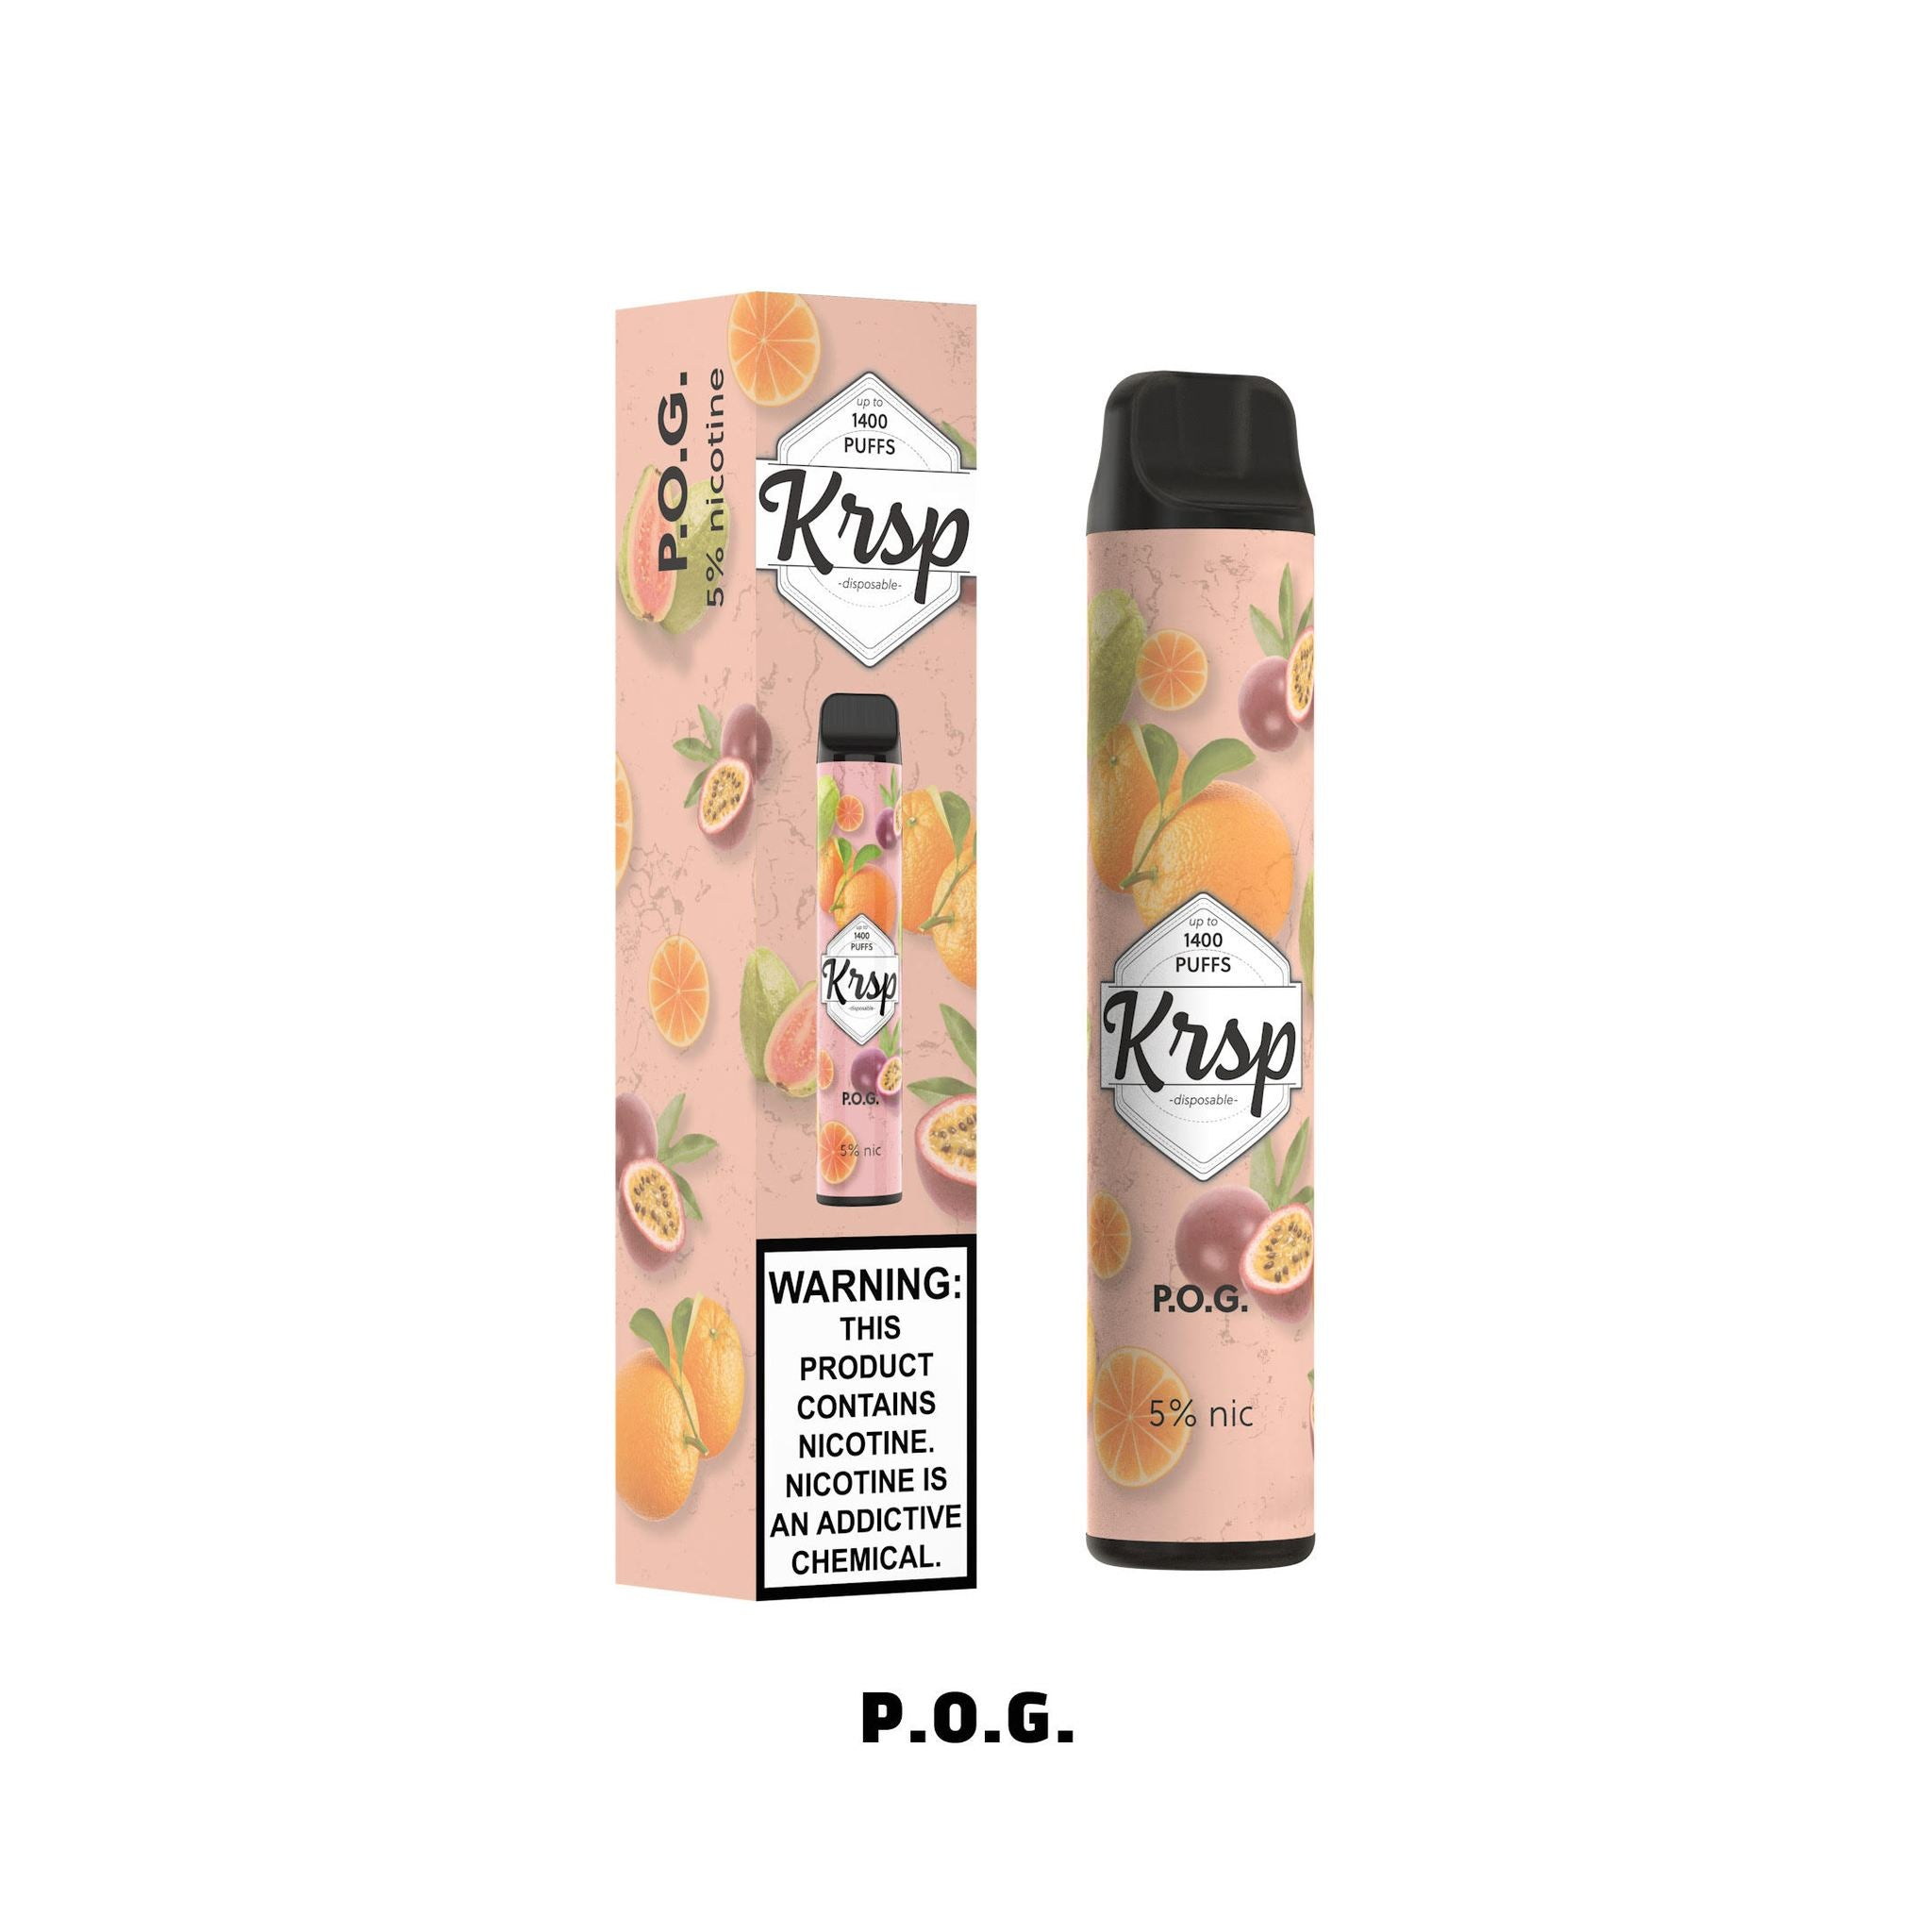 KRSP 5ML 1400 Puffs 500mAh Disposable Vape